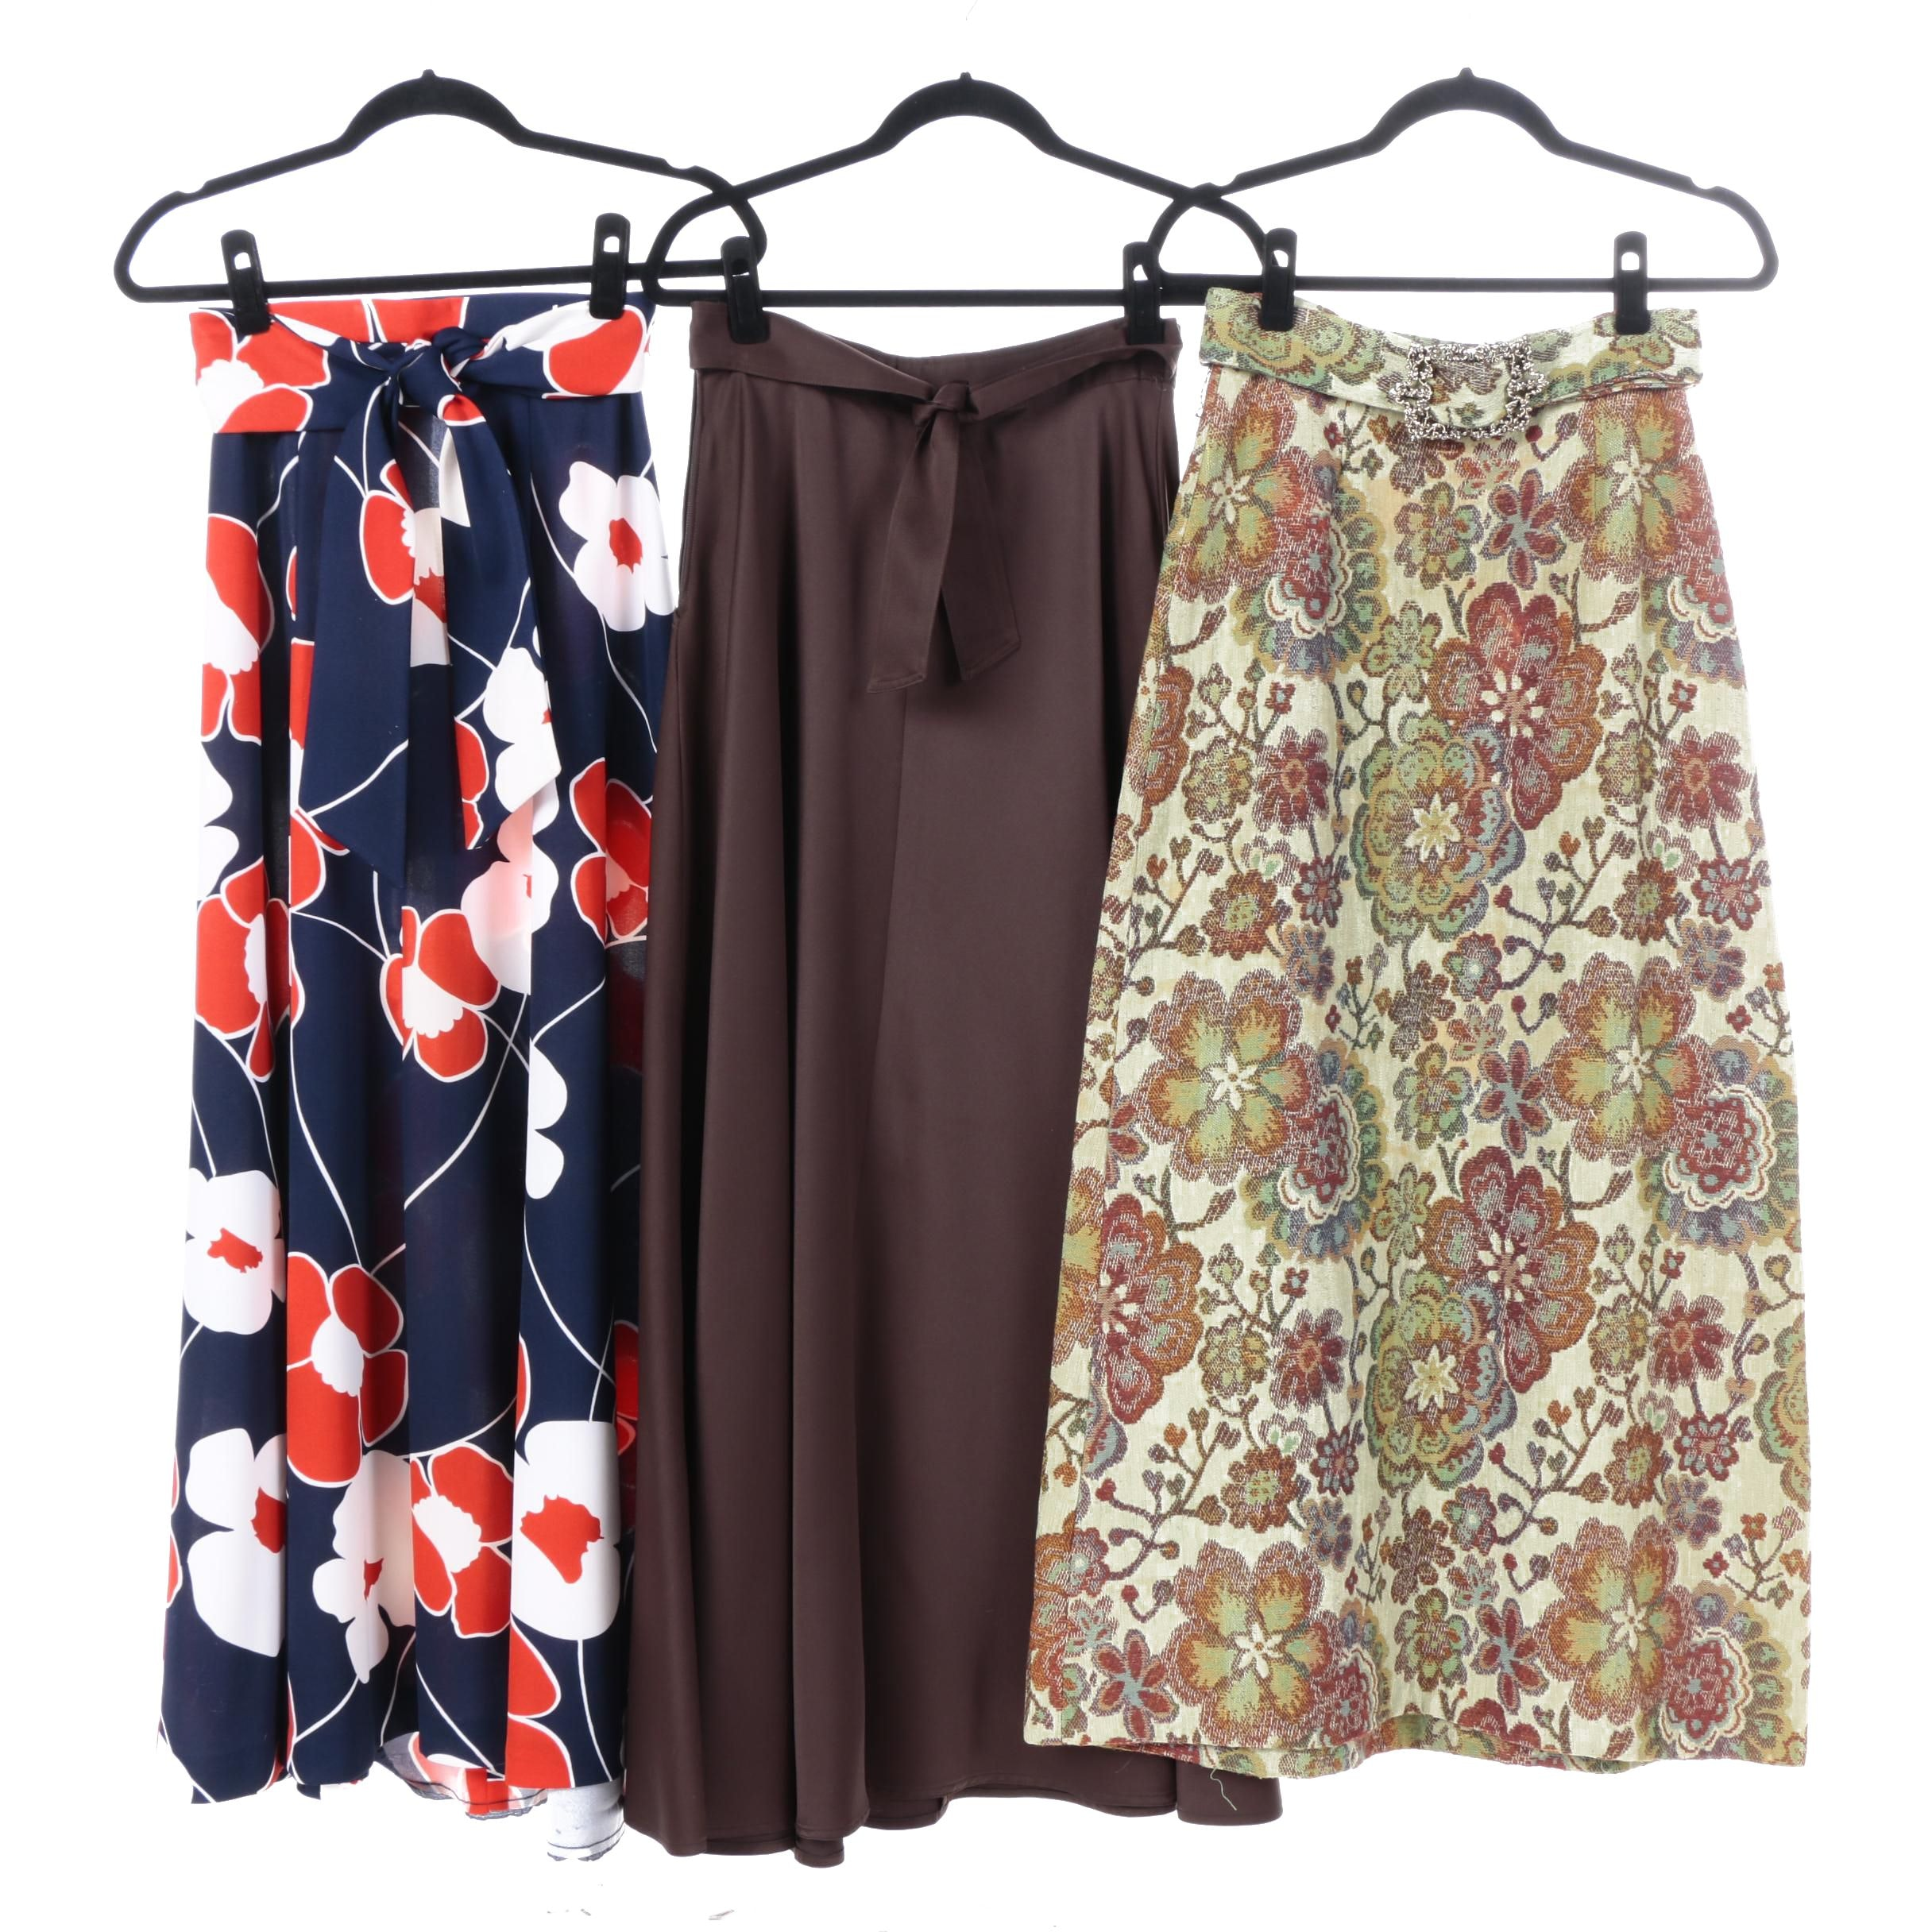 Women's Vintage A-Line Maxi Skirts with Belts